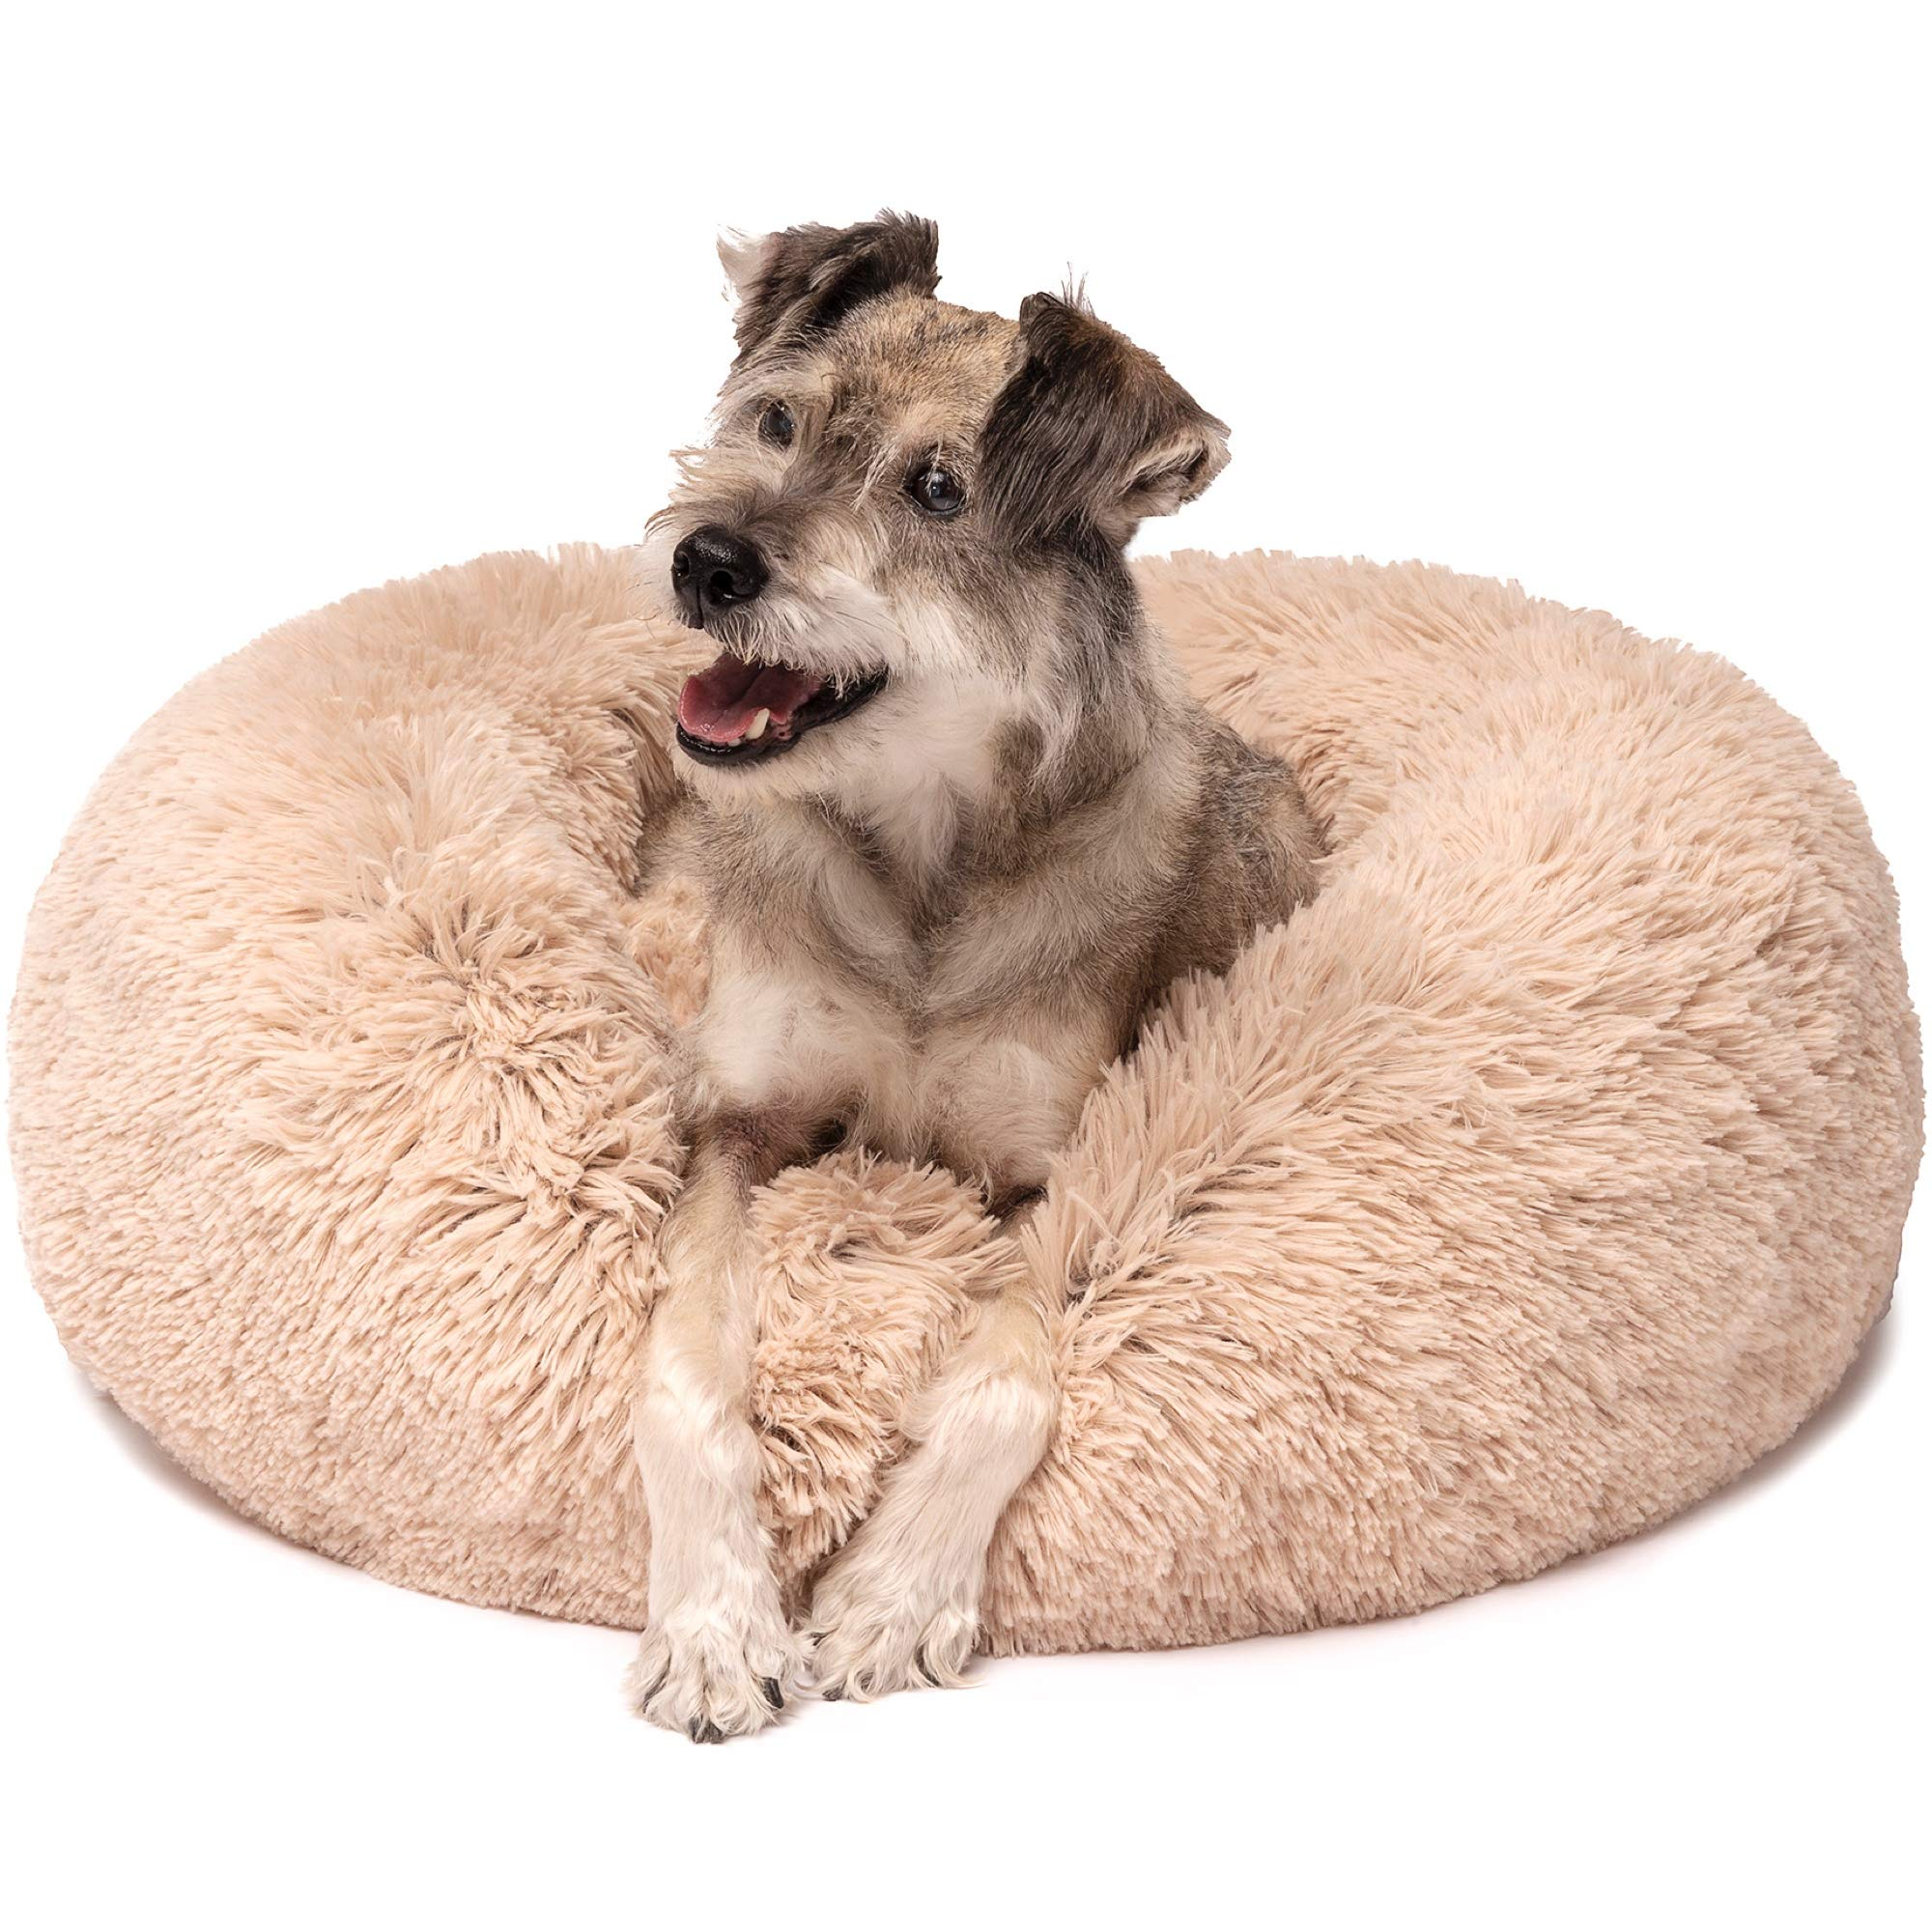 Friends Forever Amazingly Calming Bed for Dogs, Donut Dog Bed for Pet Comfy, Marshmallow Cat Beds - Tan 30 X 30 Inch by Friends Forever